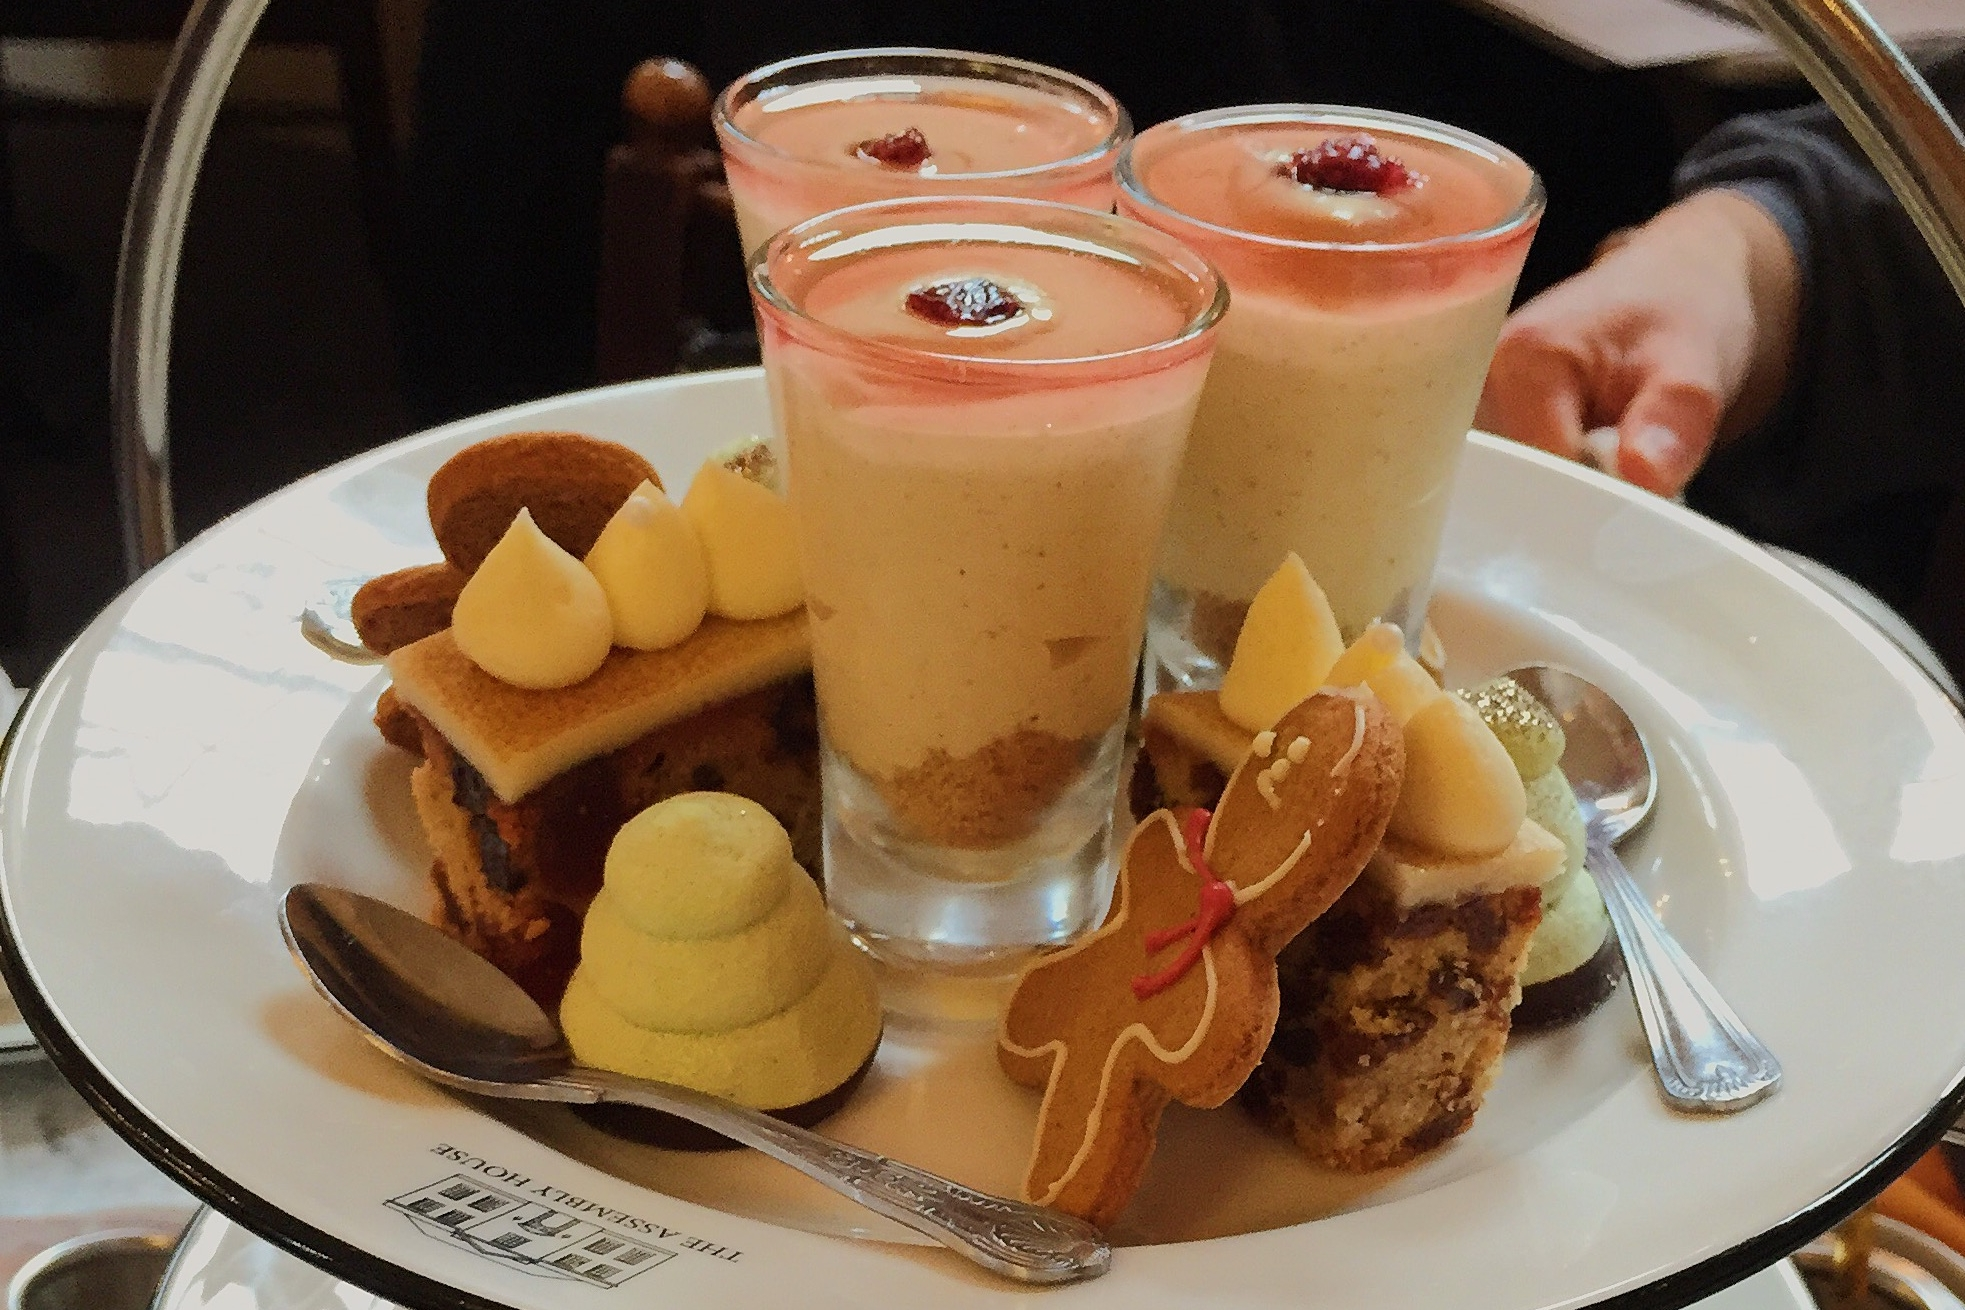 Festive afternoon tea at the Assembly House in 2016